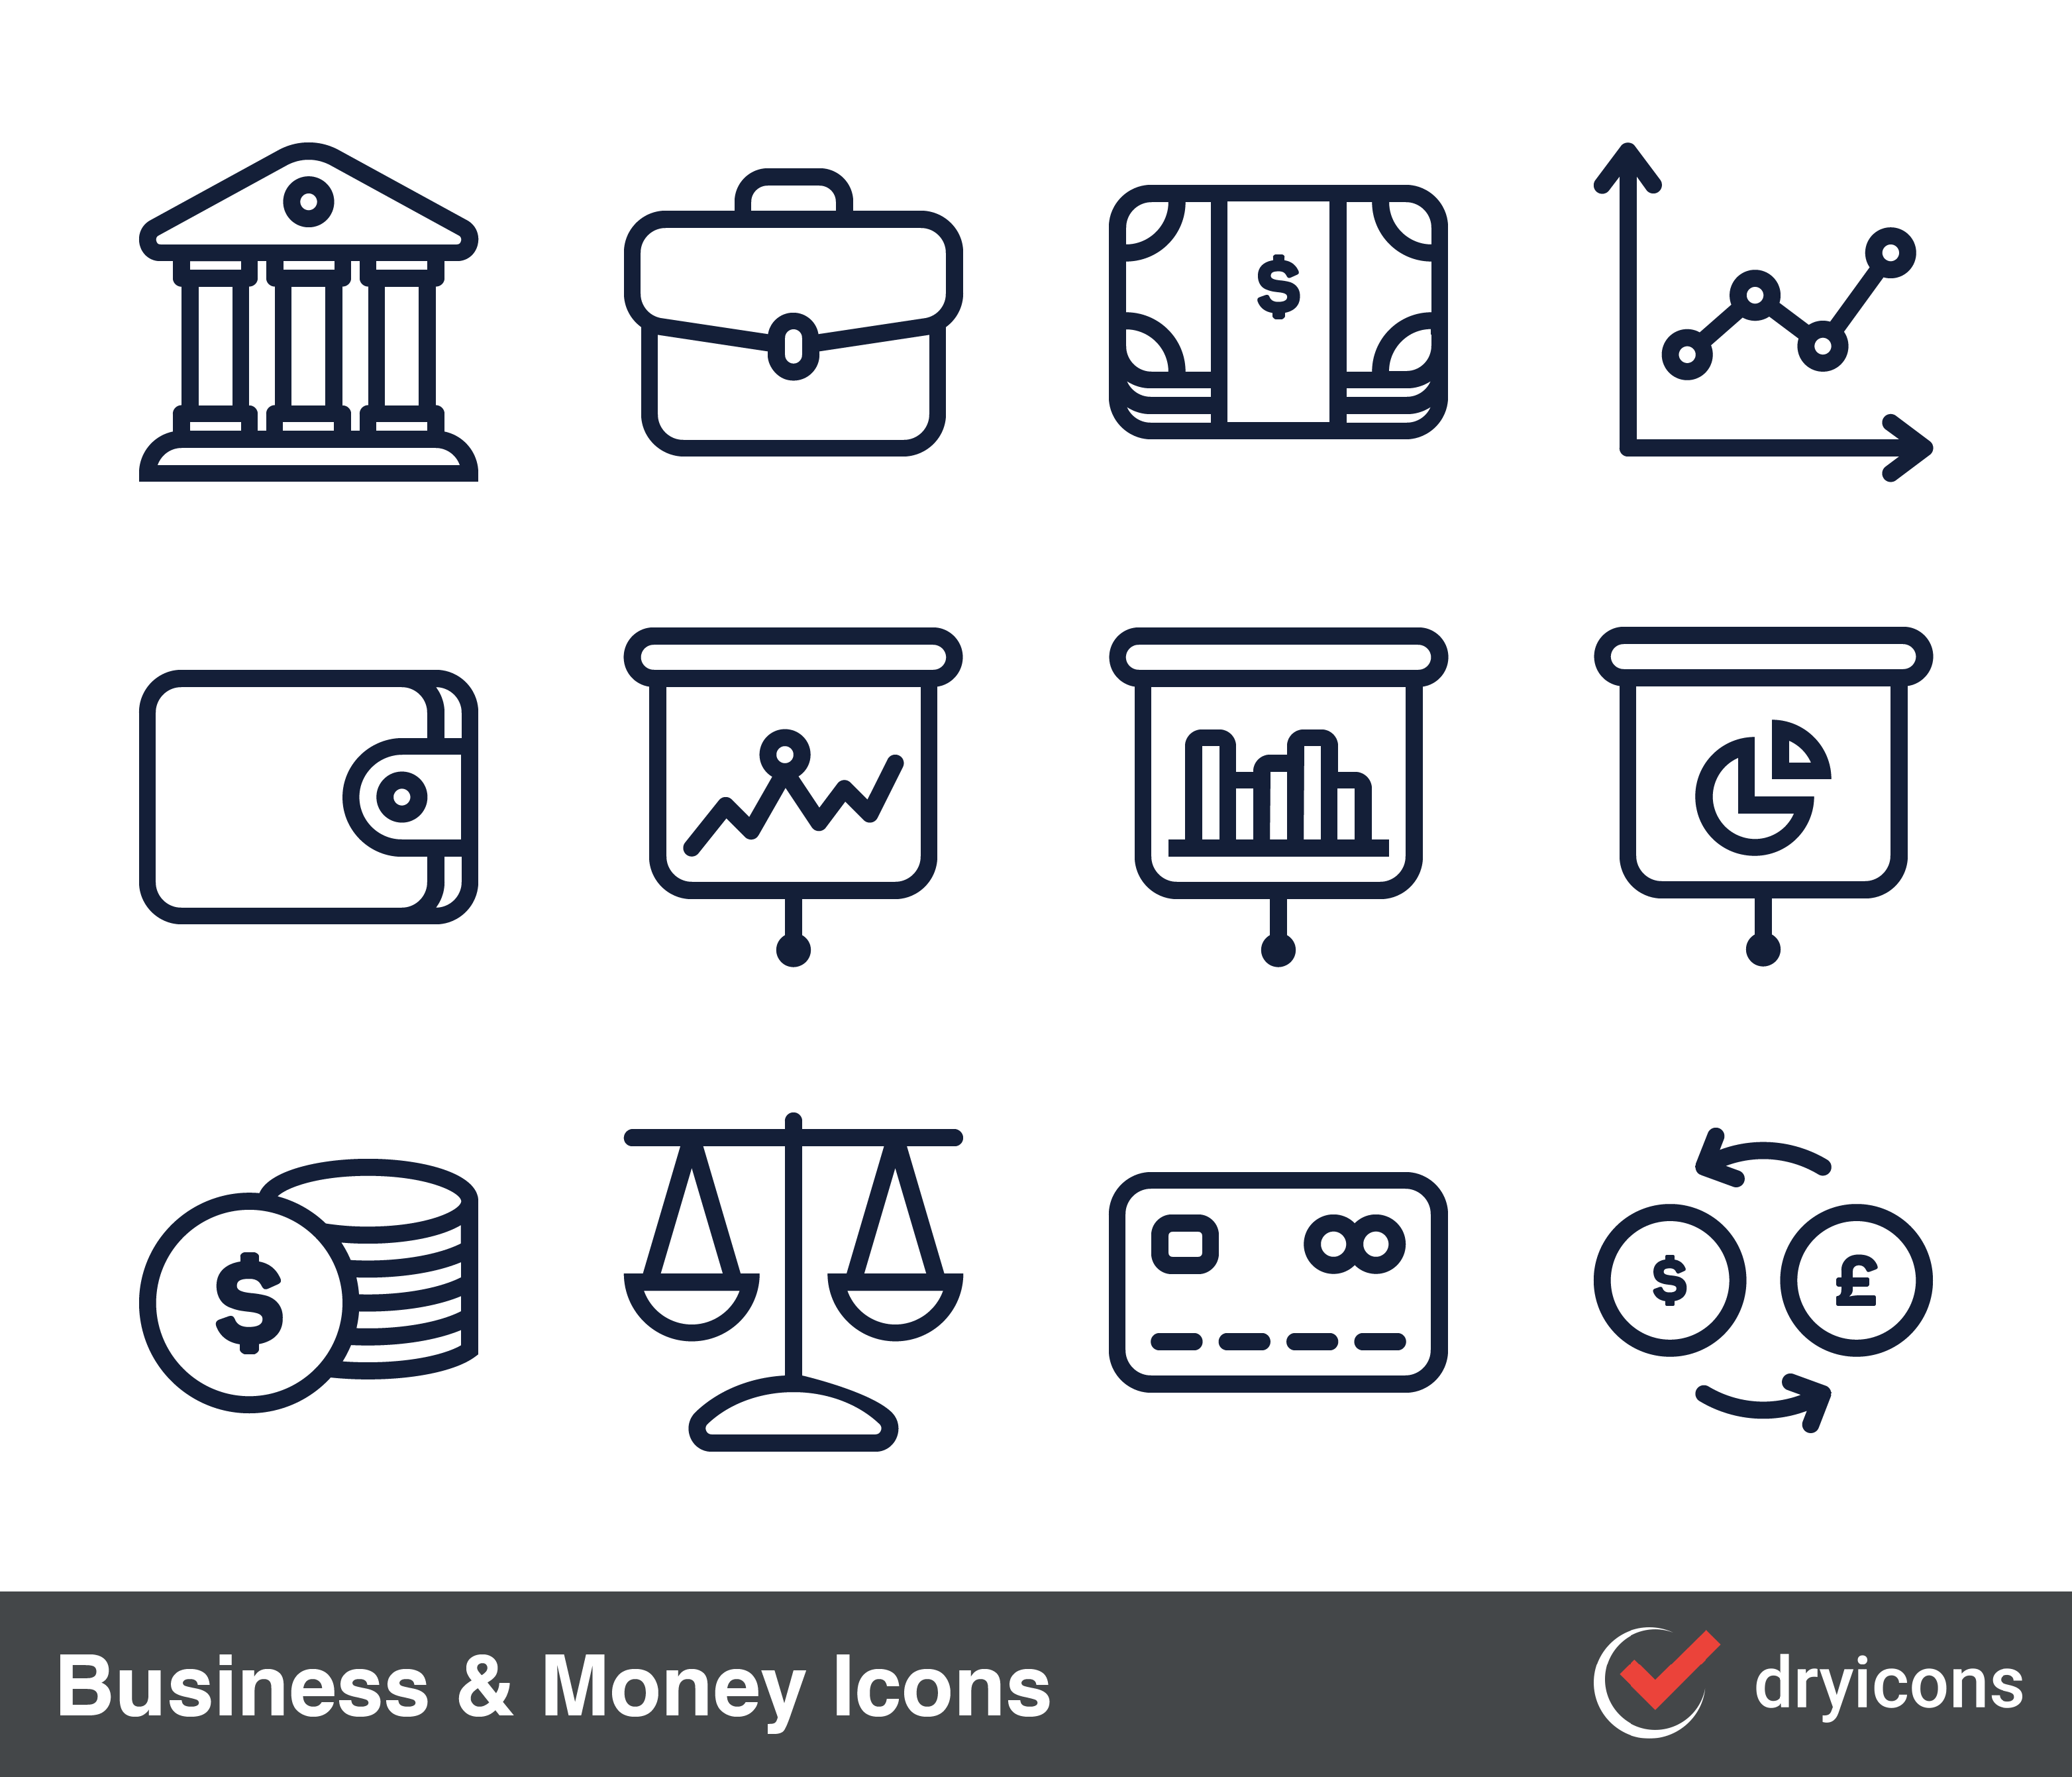 dryicons com icons and